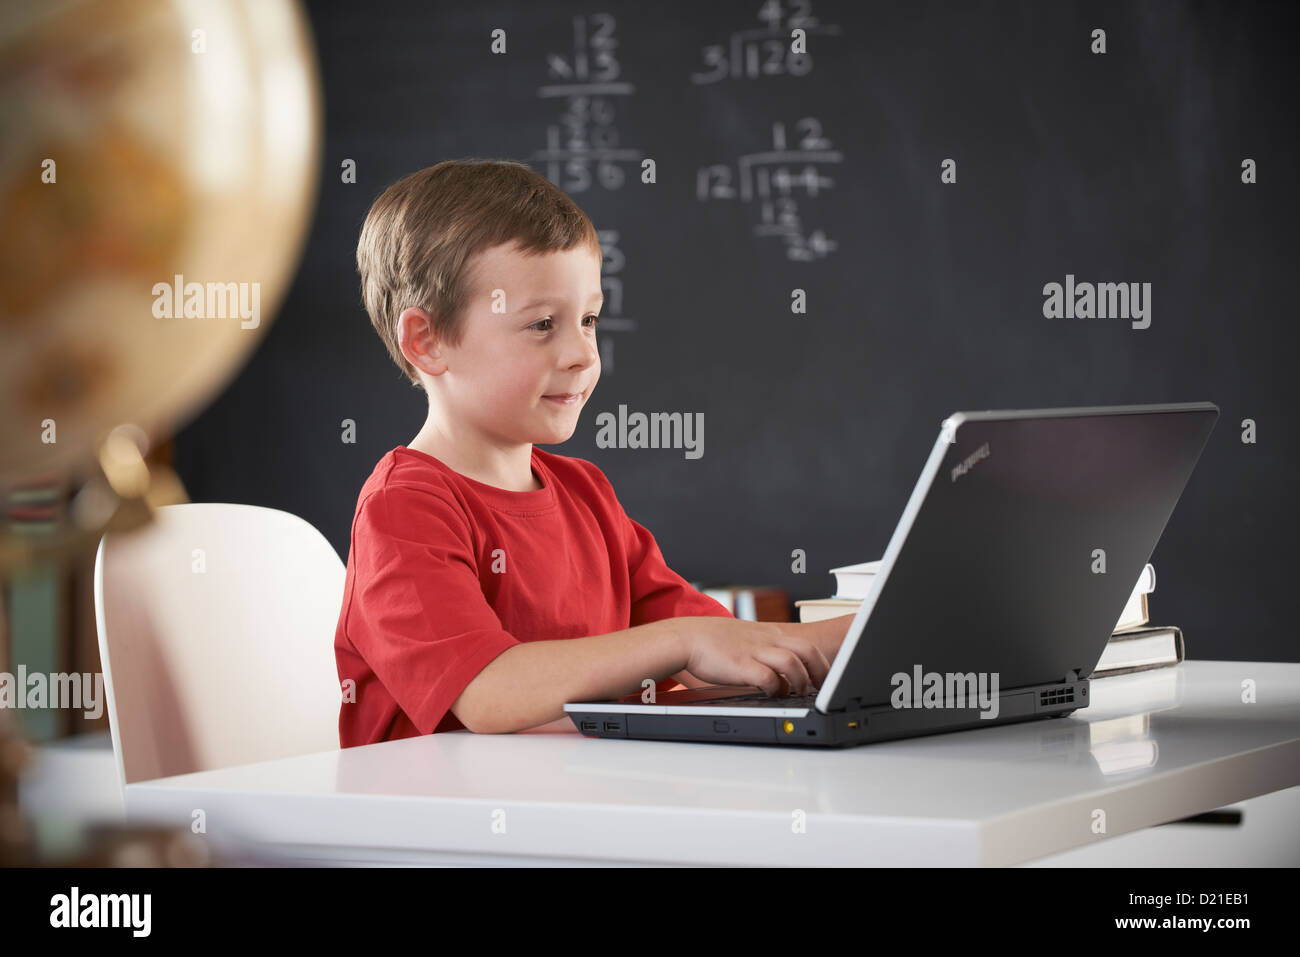 Young boy working on computer at school - Stock Image